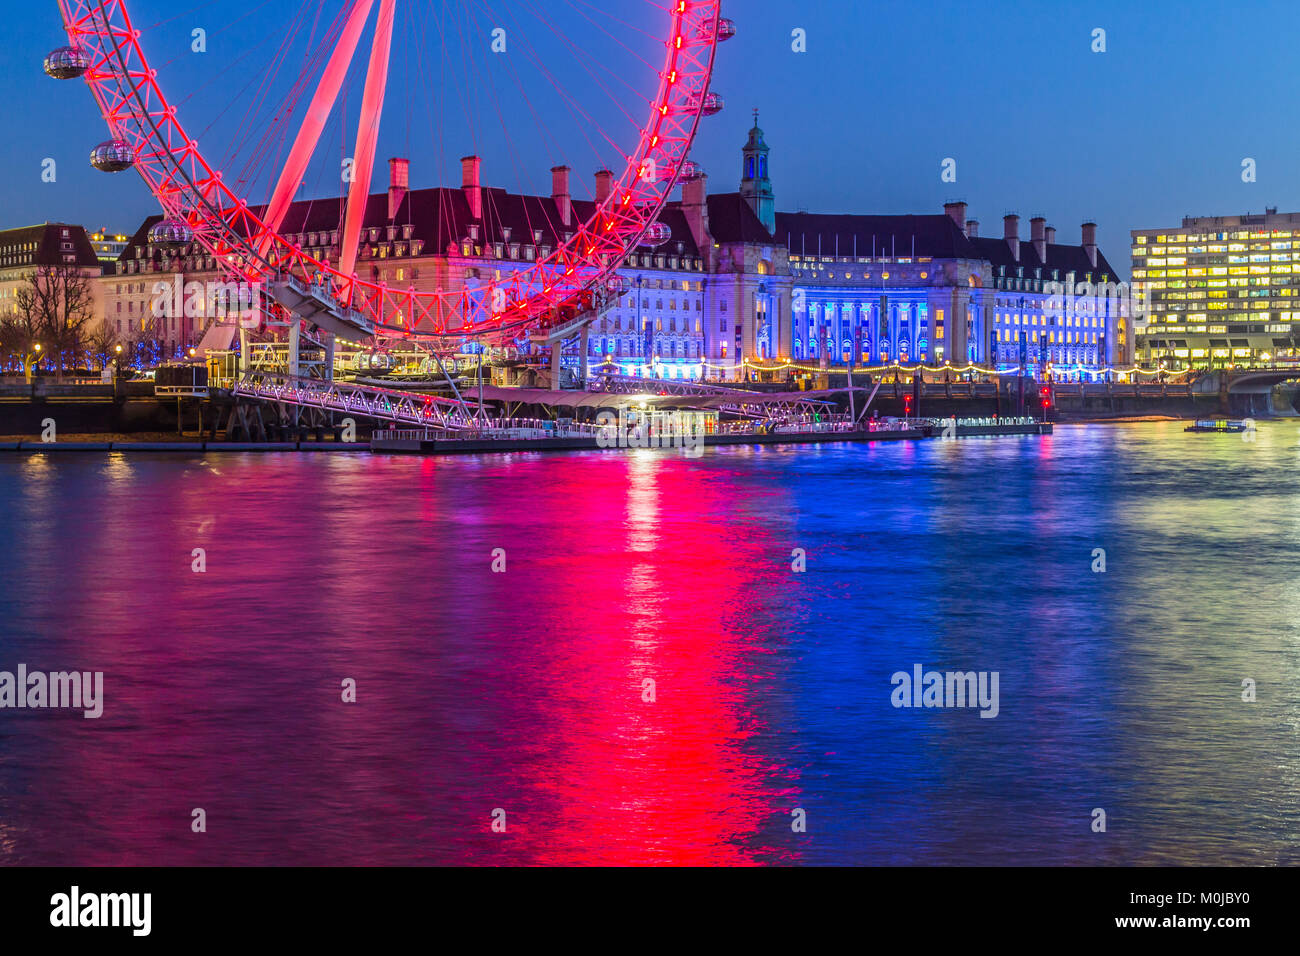 London Eye, Millennium Wheel. - Stock Image